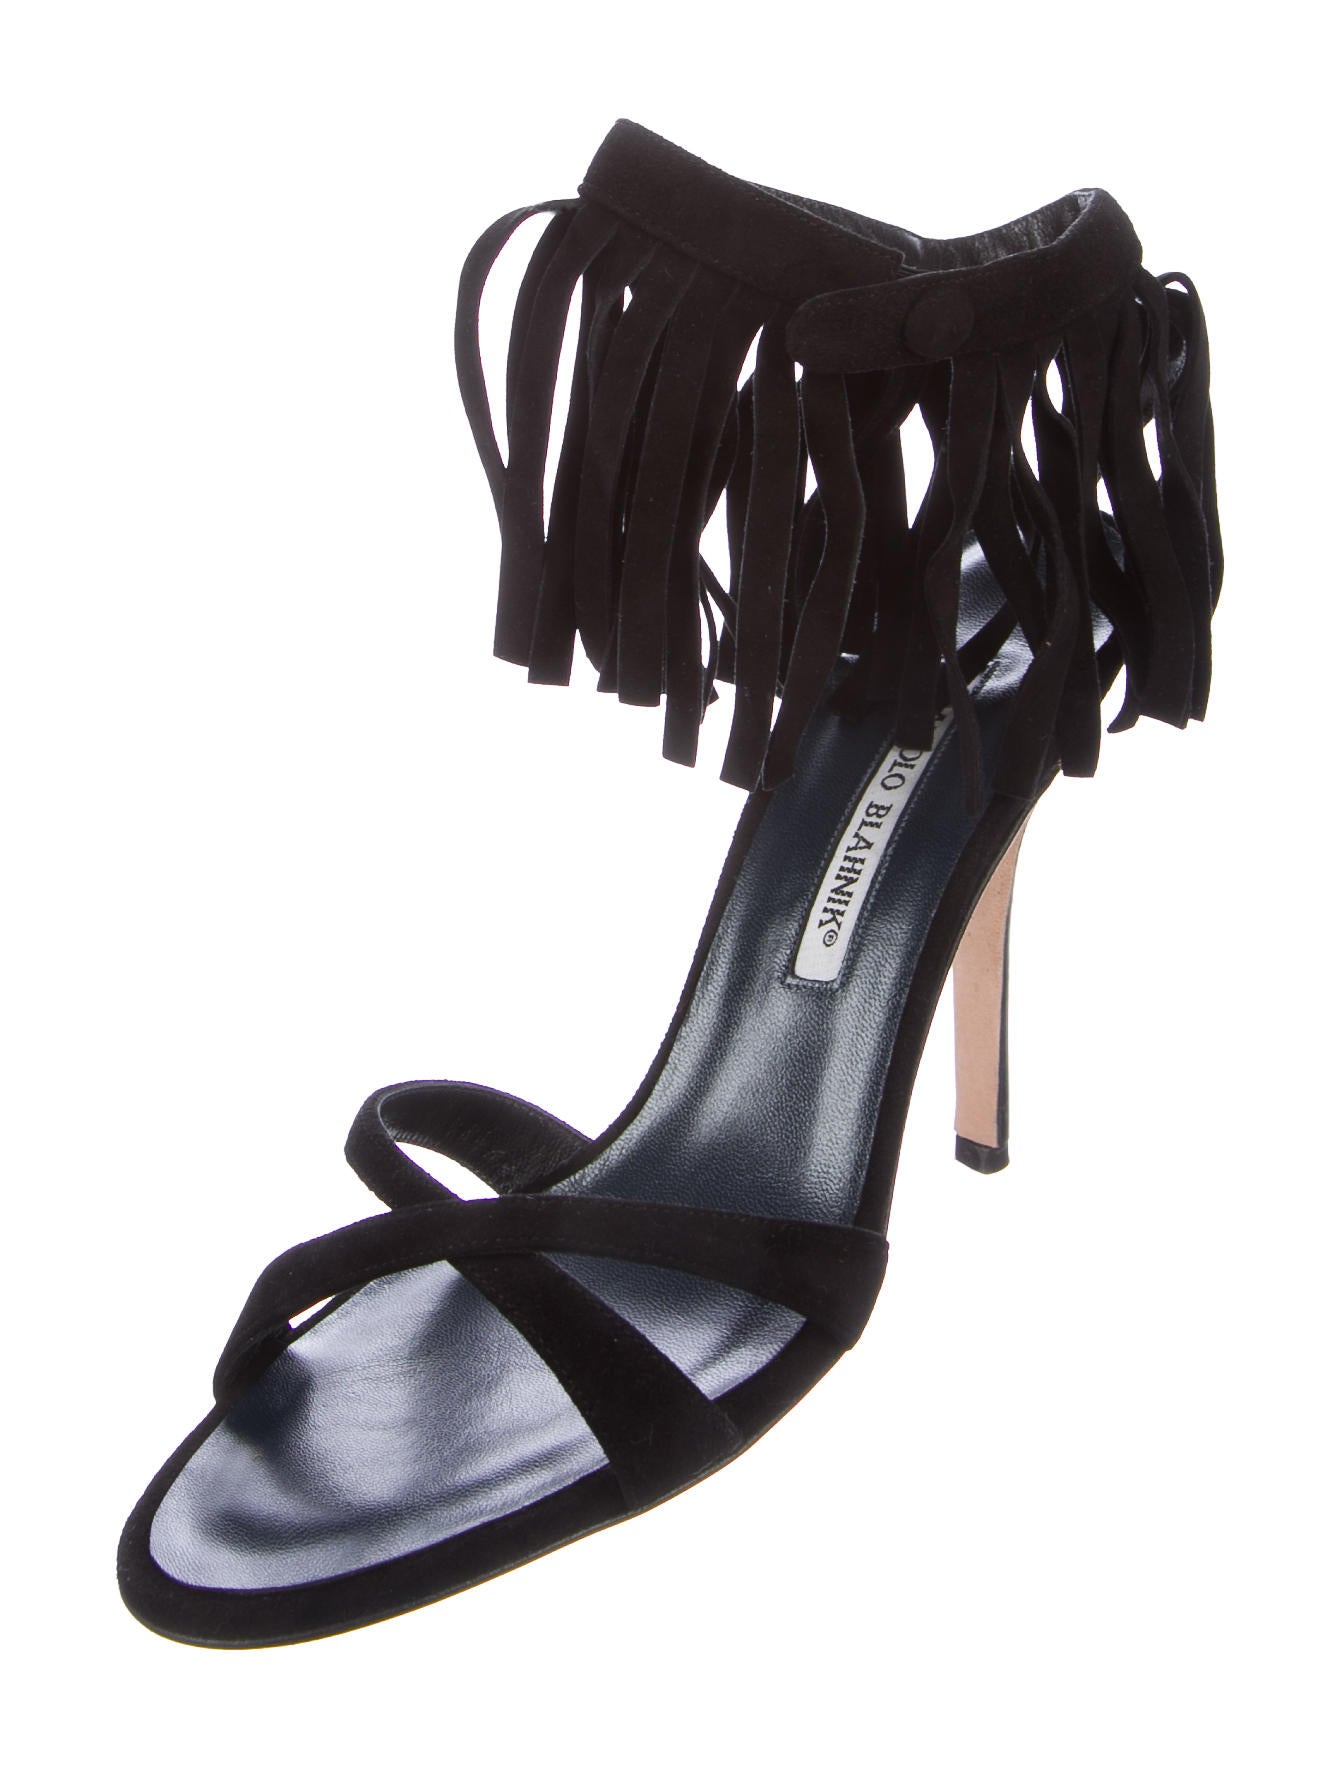 Manolo Blahnik Nativa Suede Sandals how much online countdown package free shipping 100% original clearance Cheapest GnYttpG